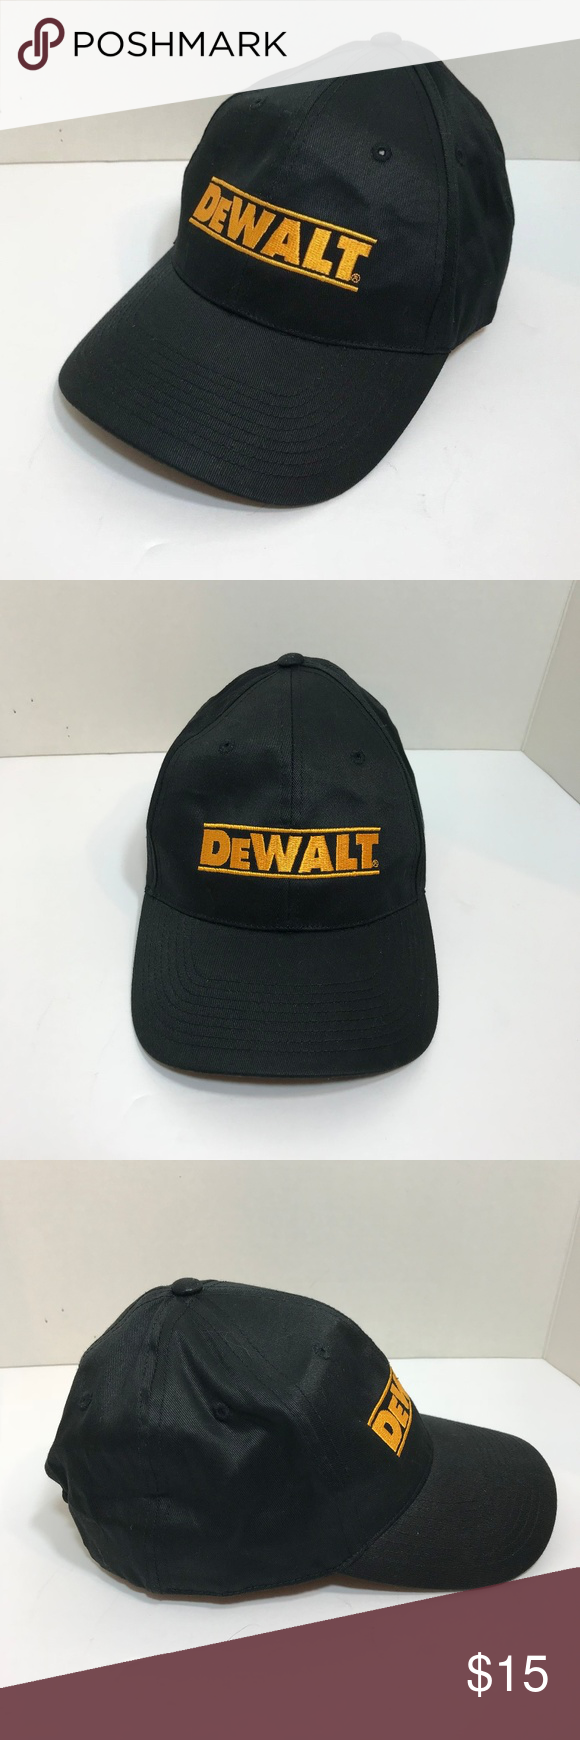 c24848829 Dewalt Snapback Cap Appears to be unworn Embroidered Dewalt Logo One ...